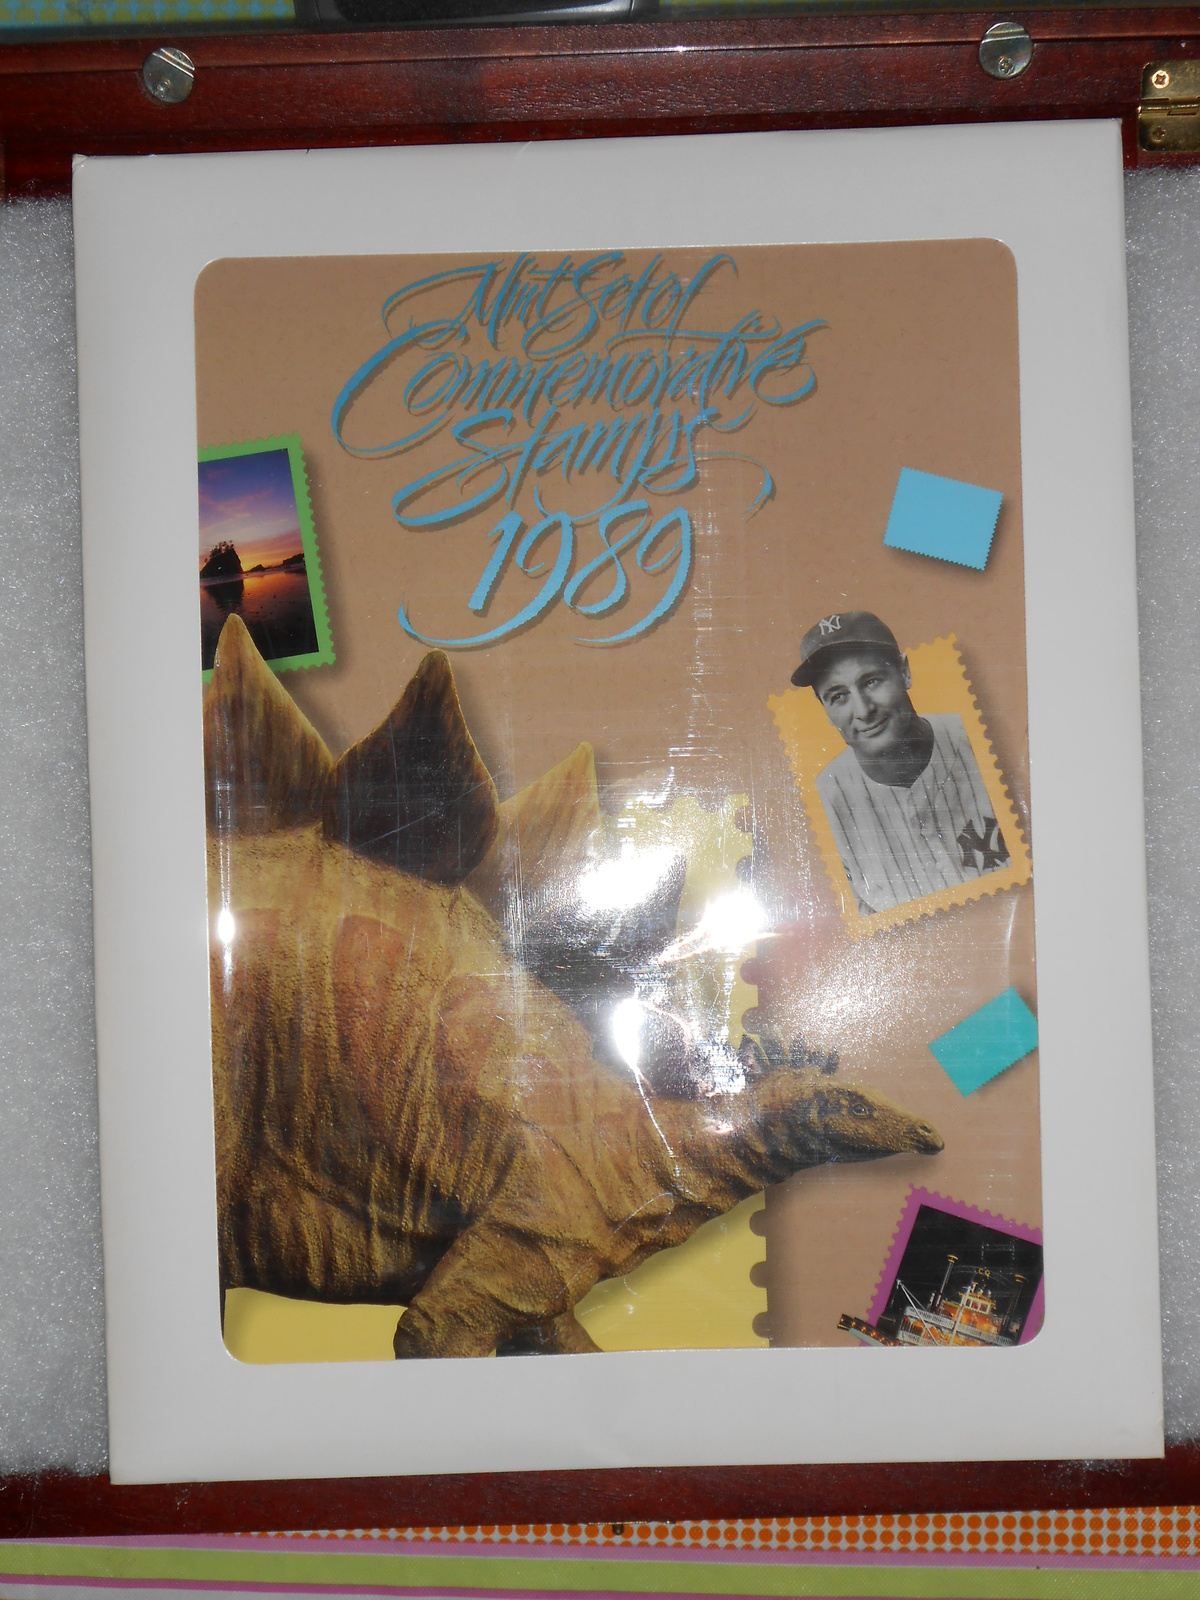 1989 Mint Commemorative Stamps USPS